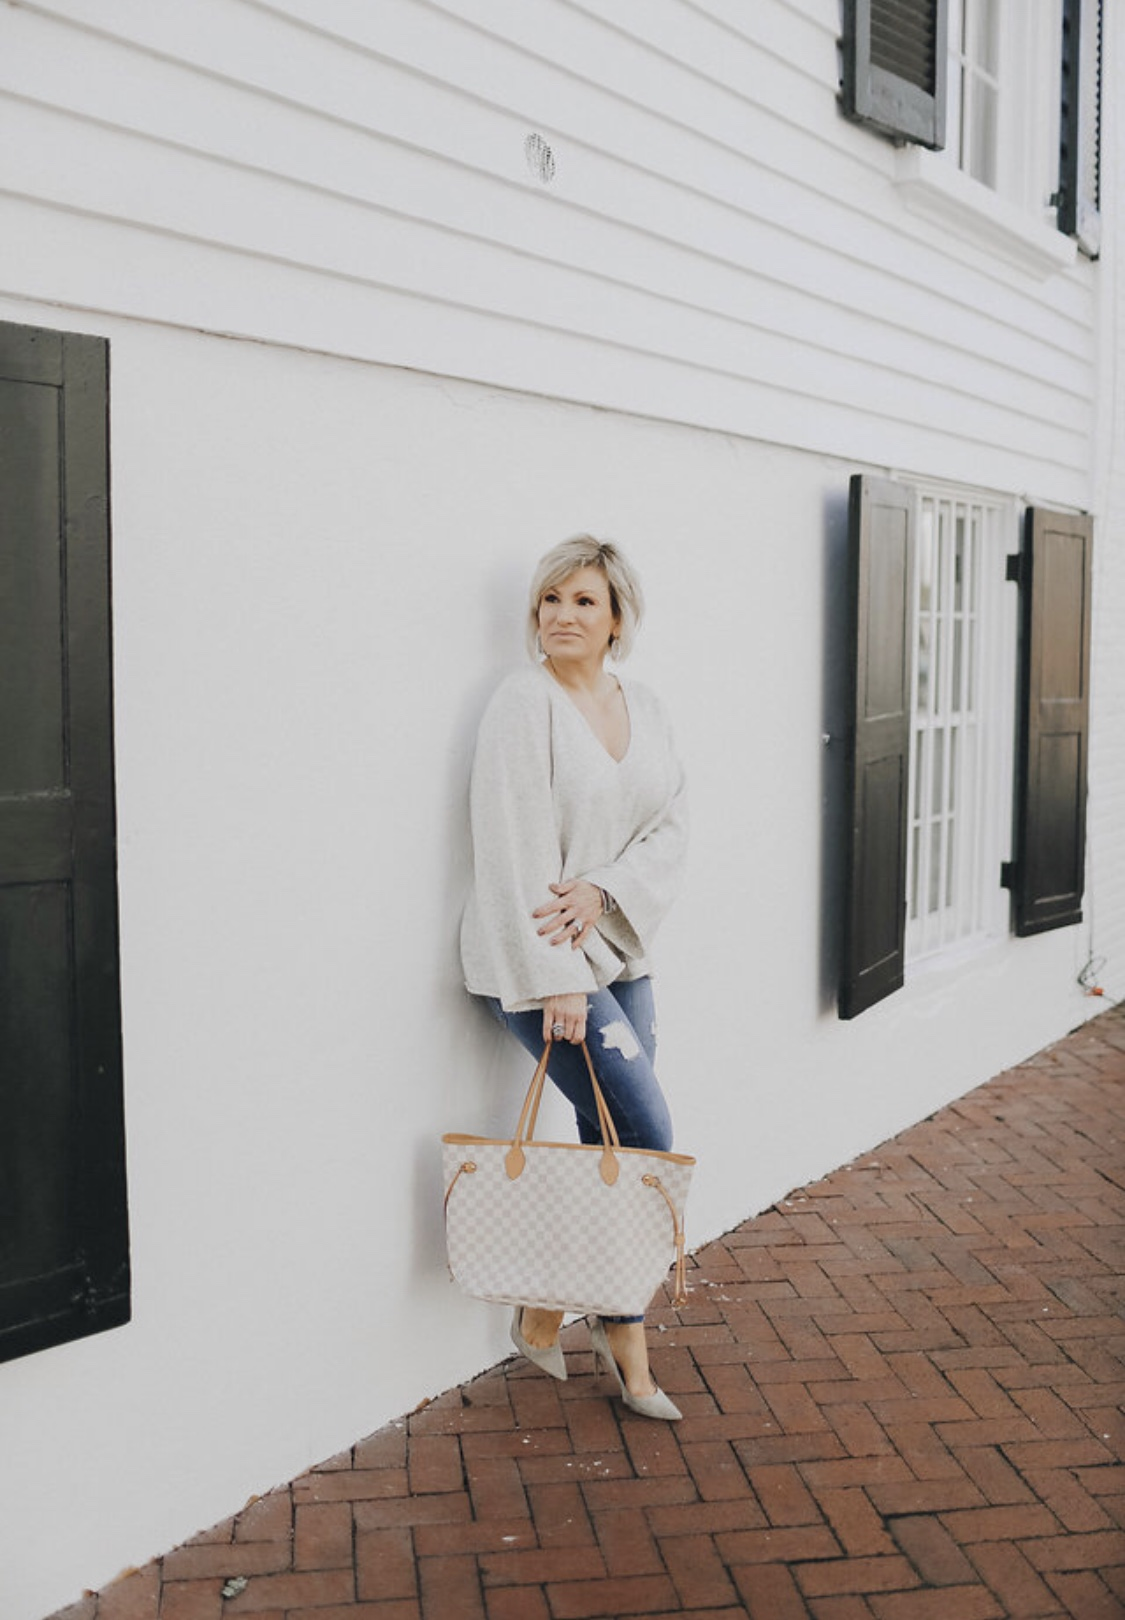 Stocking up on lighter weight sweaters to transition to spring. Easy to throw on a cardigan or heavier jacket for evenings. This  sweater  comes in four colors and is currently on sale; jeans  here , shoes  here  or similar style  here ; handbag similar style  here .